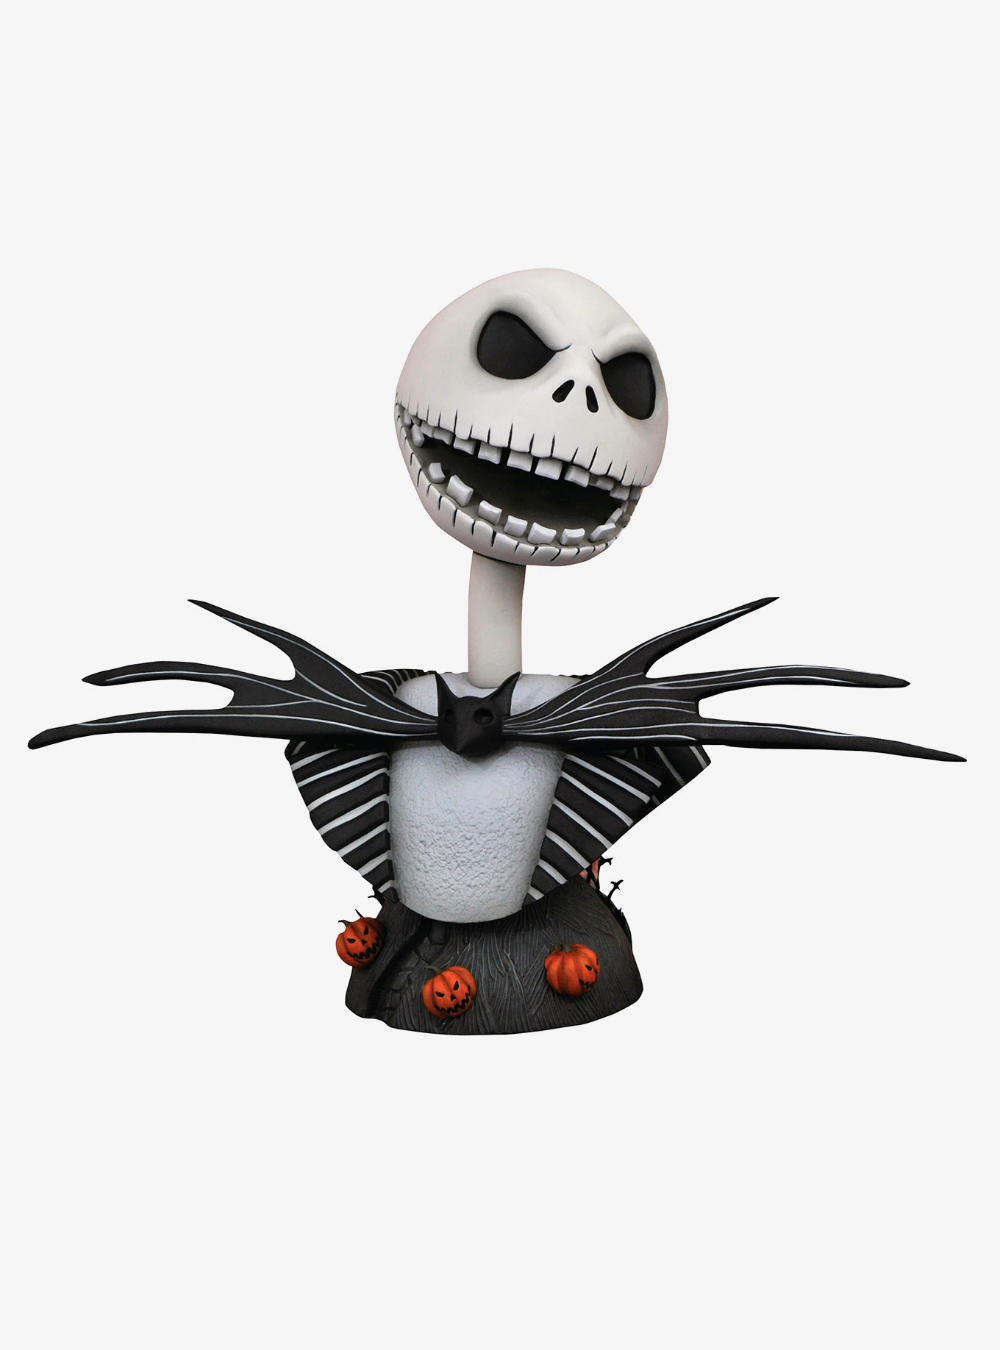 Diamond Select Nightmare Before Christmas Series 10 The Nightmare Before Christmas Jack Skellington Half Scale Bust